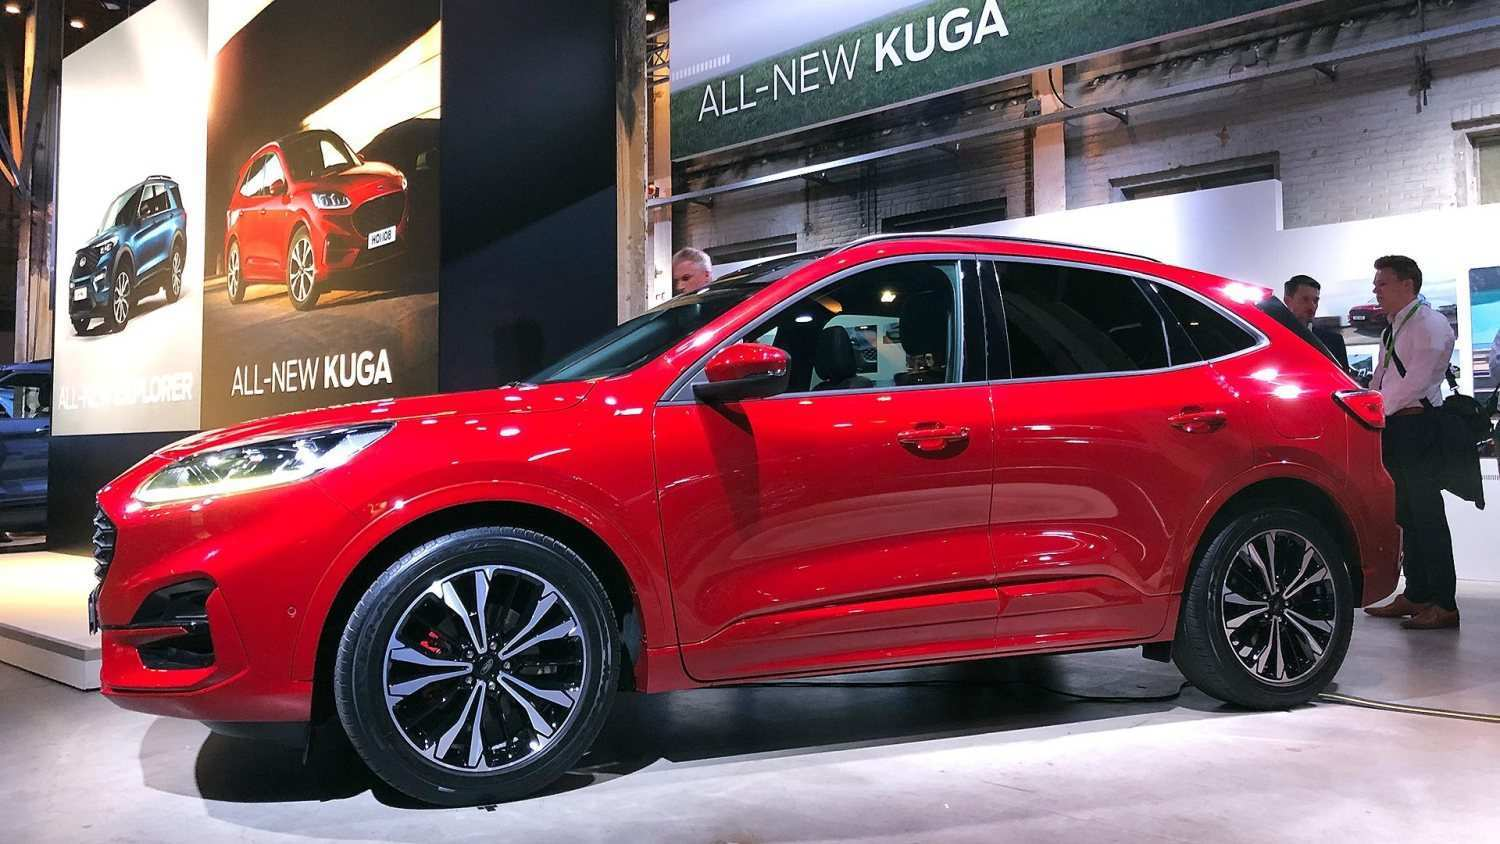 81 Gallery of Ford Kuga 2020 Price with Ford Kuga 2020